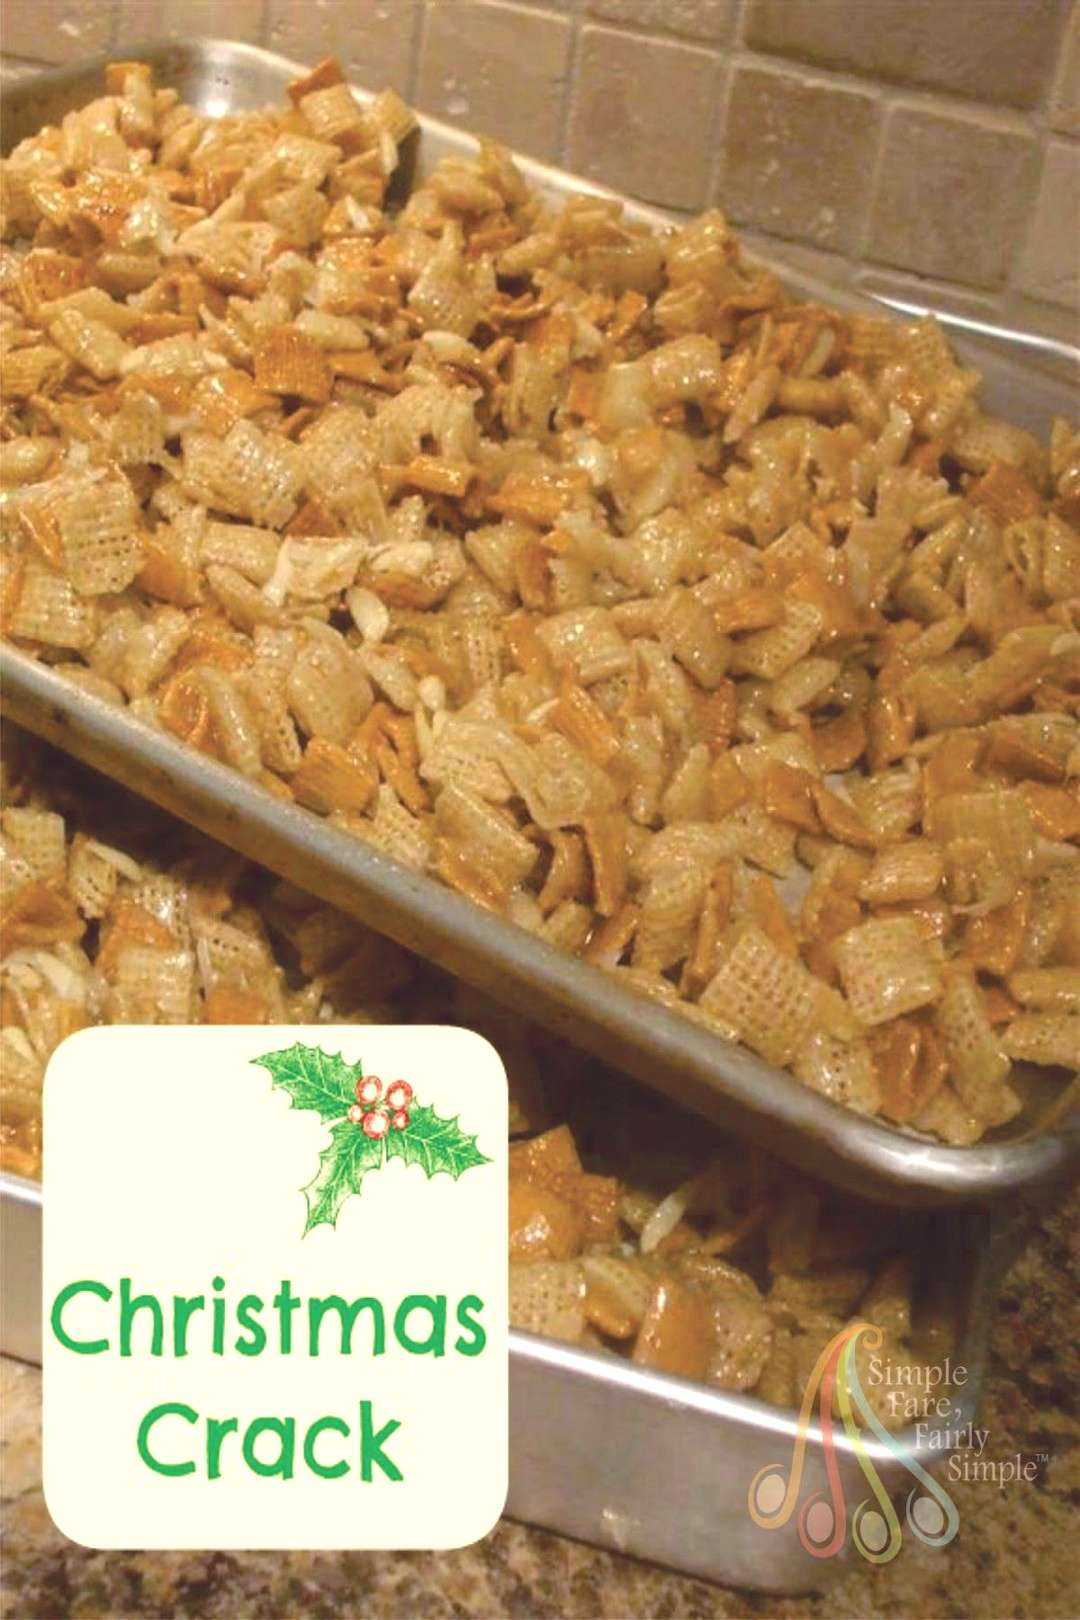 Simple Fare, Fairly Simple Christmas Crack